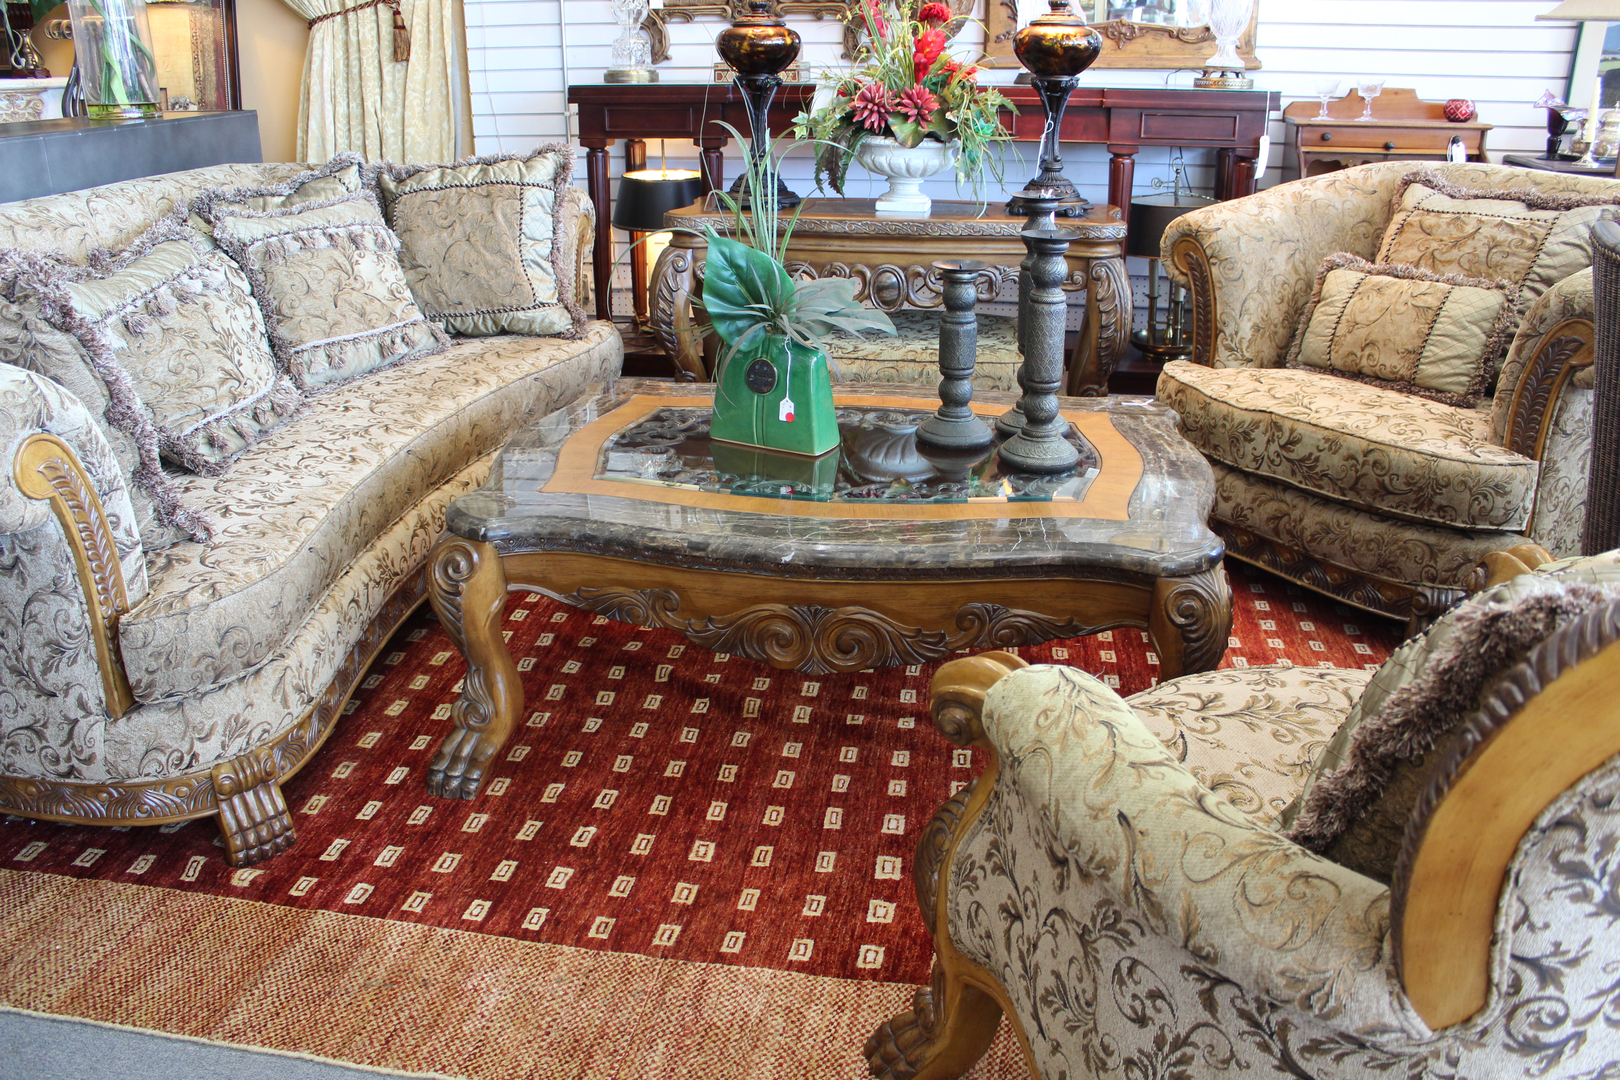 images?q=tbn:ANd9GcQh_l3eQ5xwiPy07kGEXjmjgmBKBRB7H2mRxCGhv1tFWg5c_mWT Ideas For Furniture Consignment @house2homegoods.net